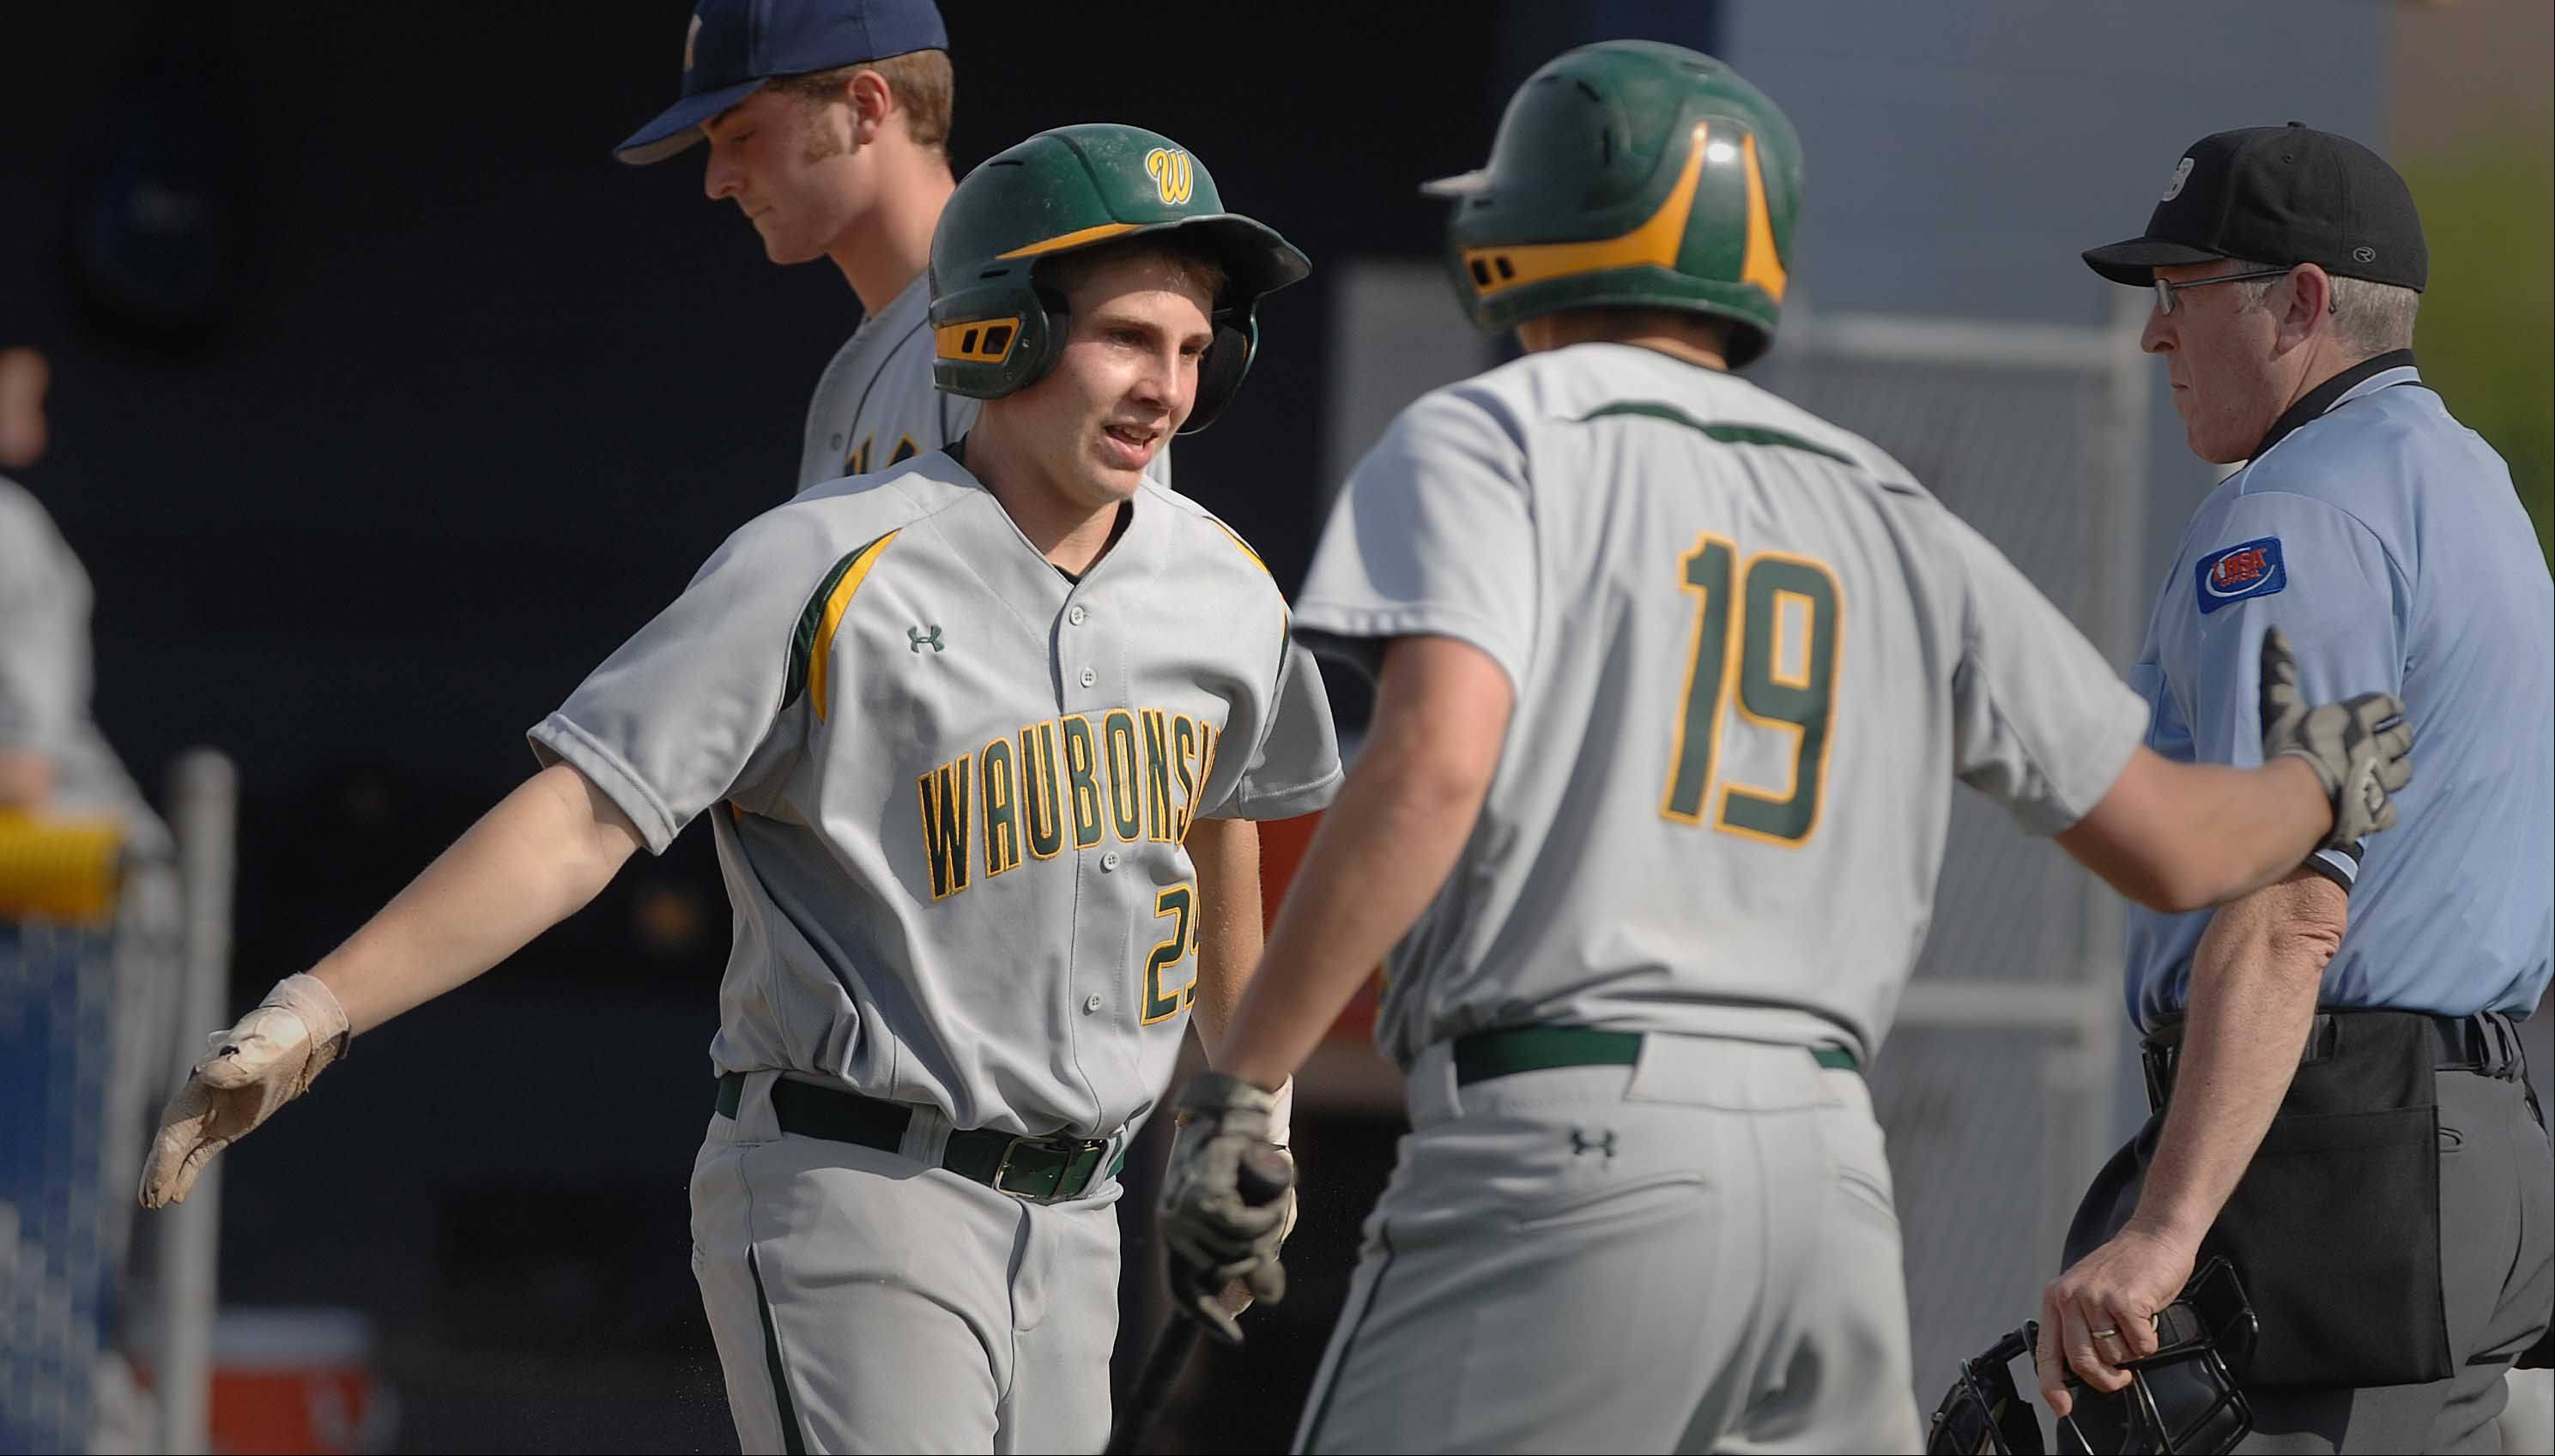 Justin Gradus,left, and Drew Ellam of Waubonsie celebrate a score during the Waubonsie Valley at Neuqua Valley baseball game Tuesday.